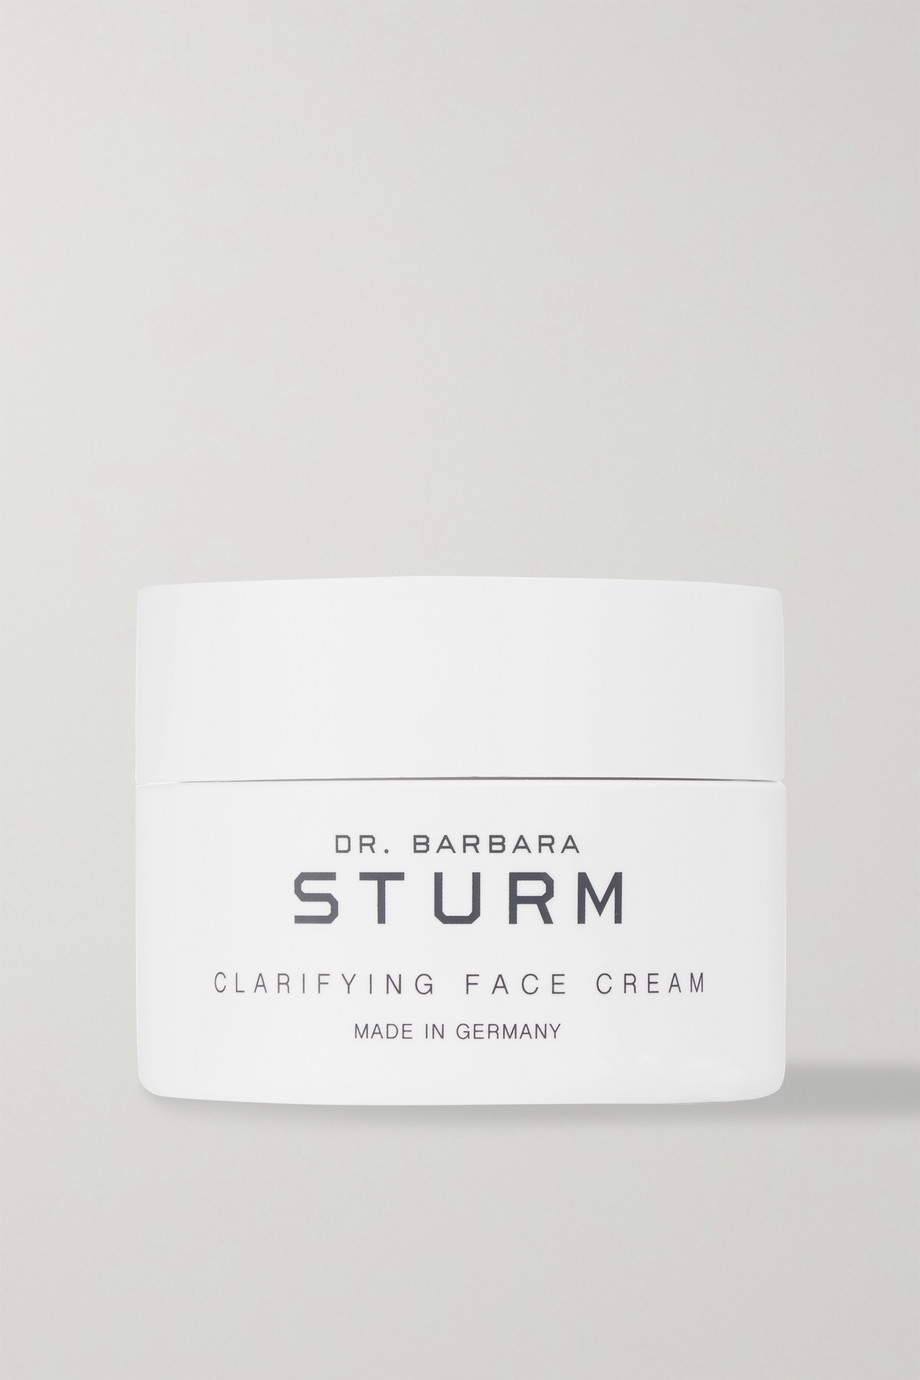 Dr. Barbara Sturm Clarifying Face Cream, 50 ml – Gesichtscreme